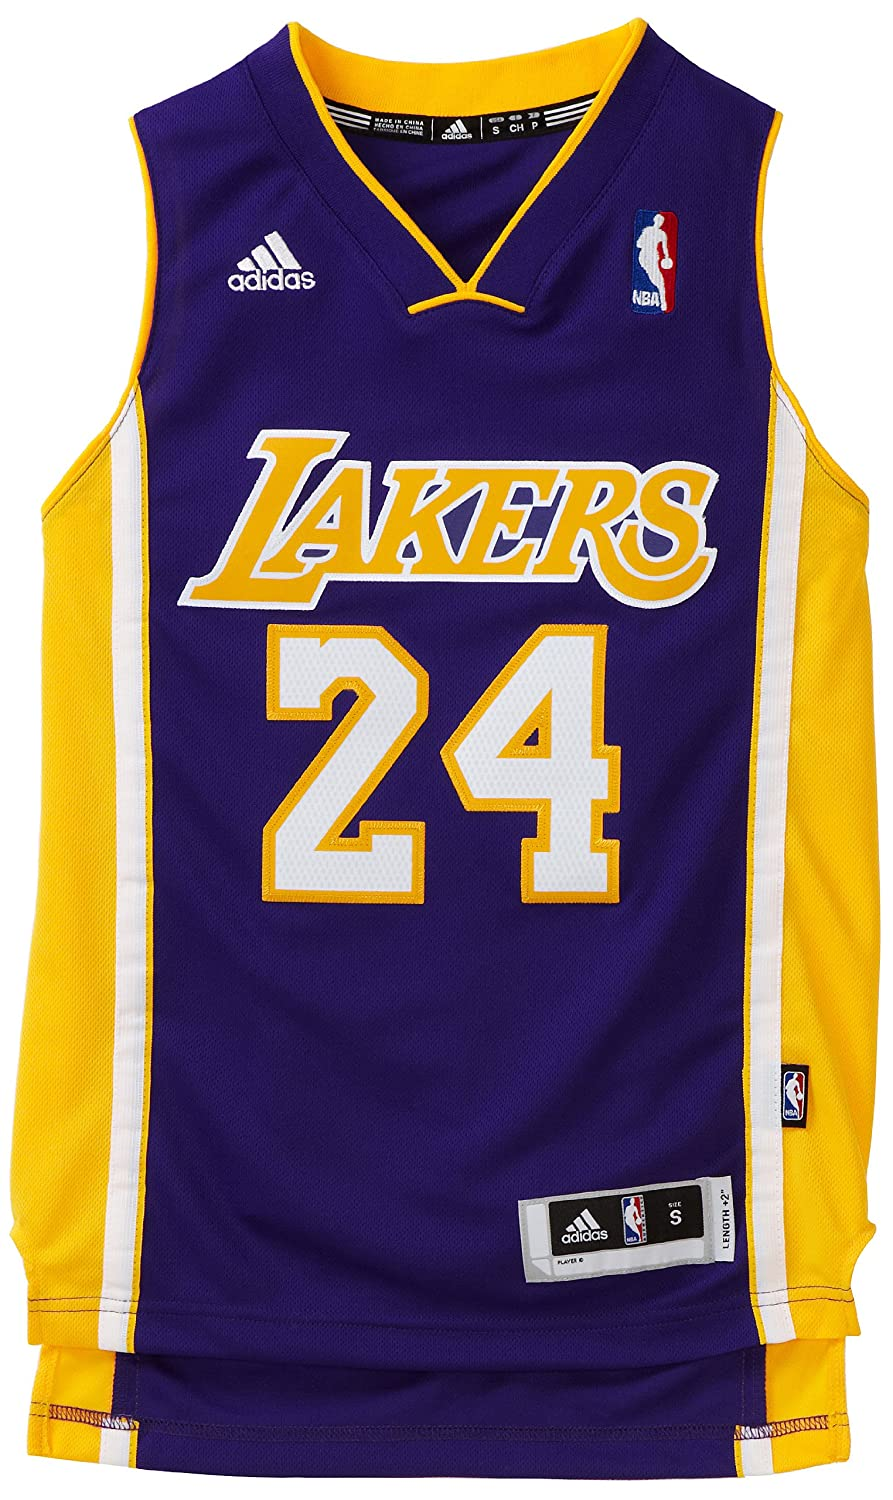 rmnpxv Amazon.com : Adidas Los Angeles Lakers #24 Kobe Bryant Purple